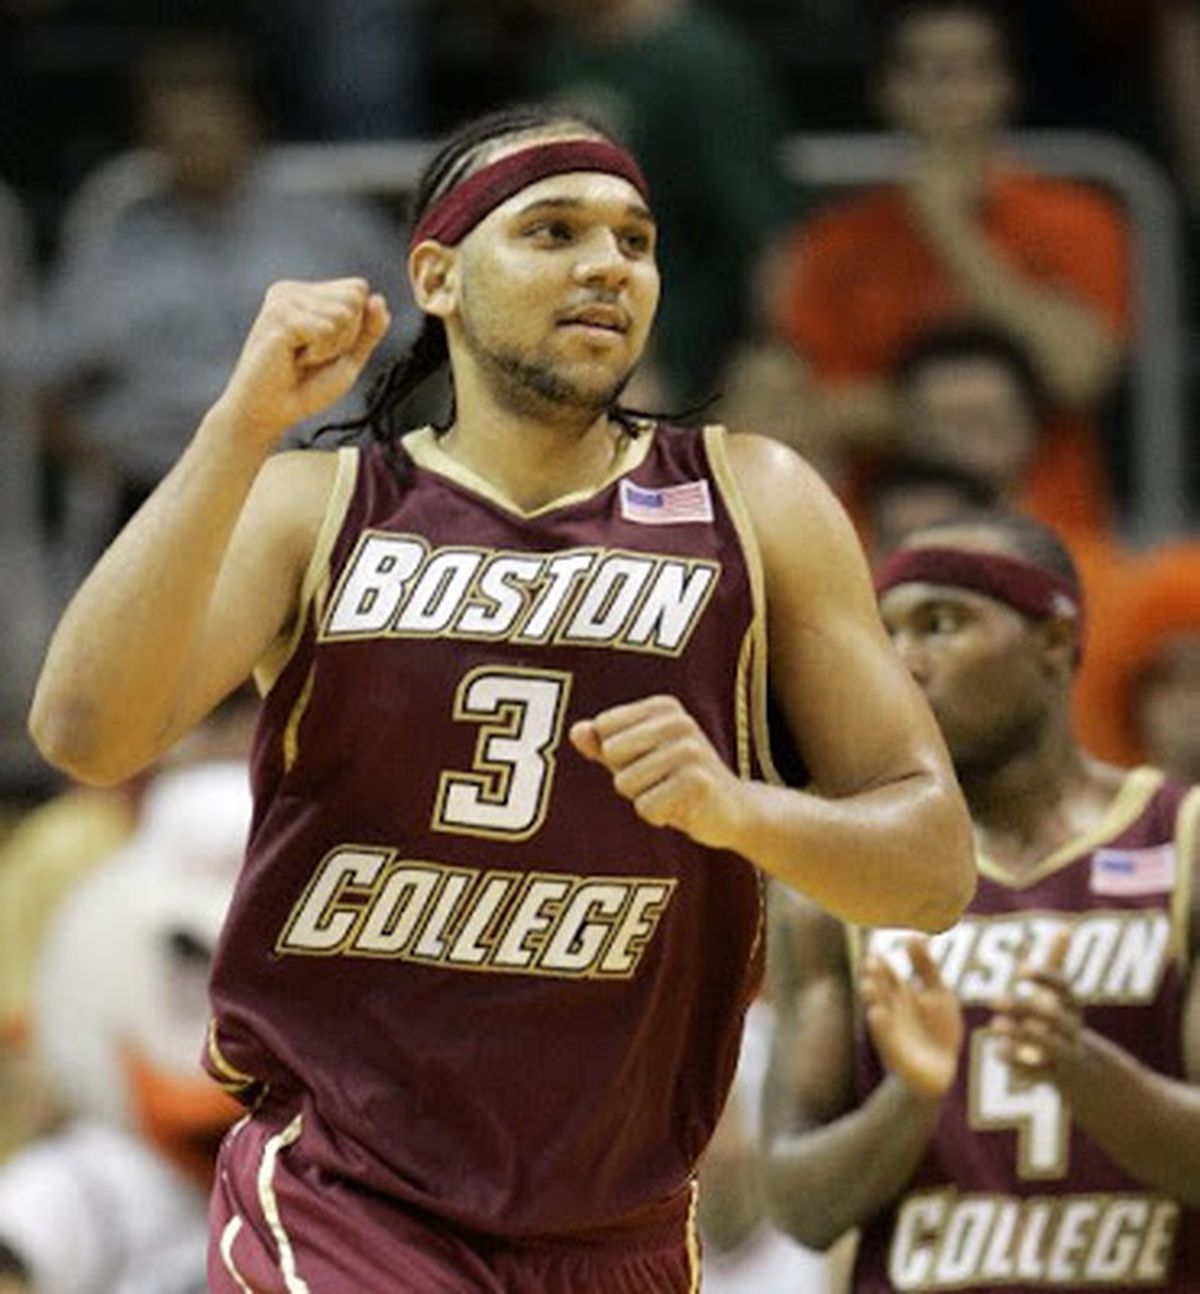 Phoenix Suns' Jared Dudley On Treating Others The Way You